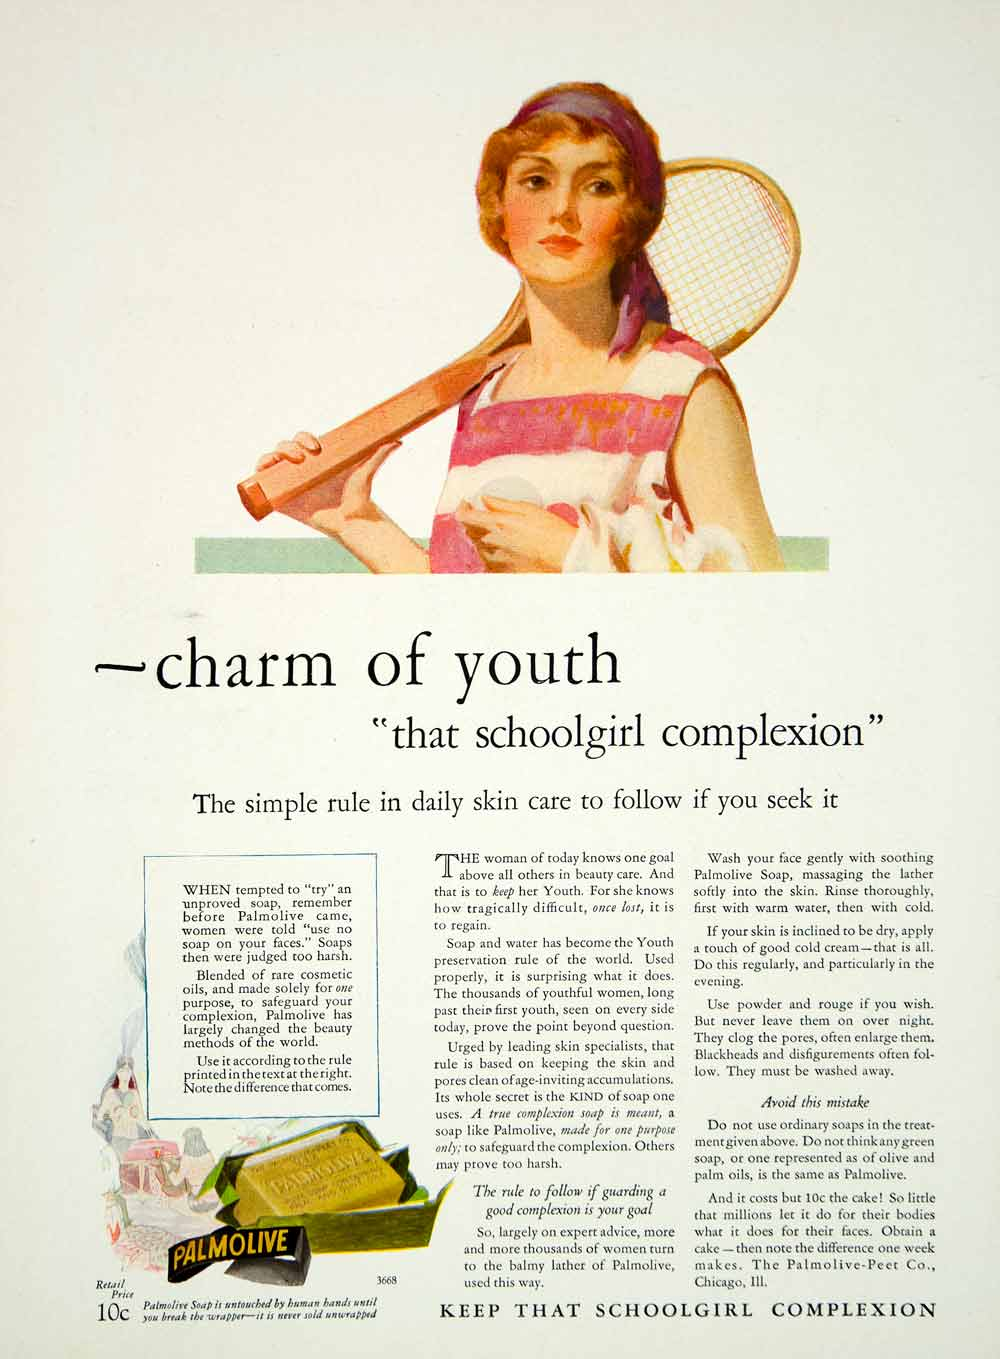 1927 Ad Vintage Palmolive Soap Woman Tennis Player Racket Complexion Skin YPP3